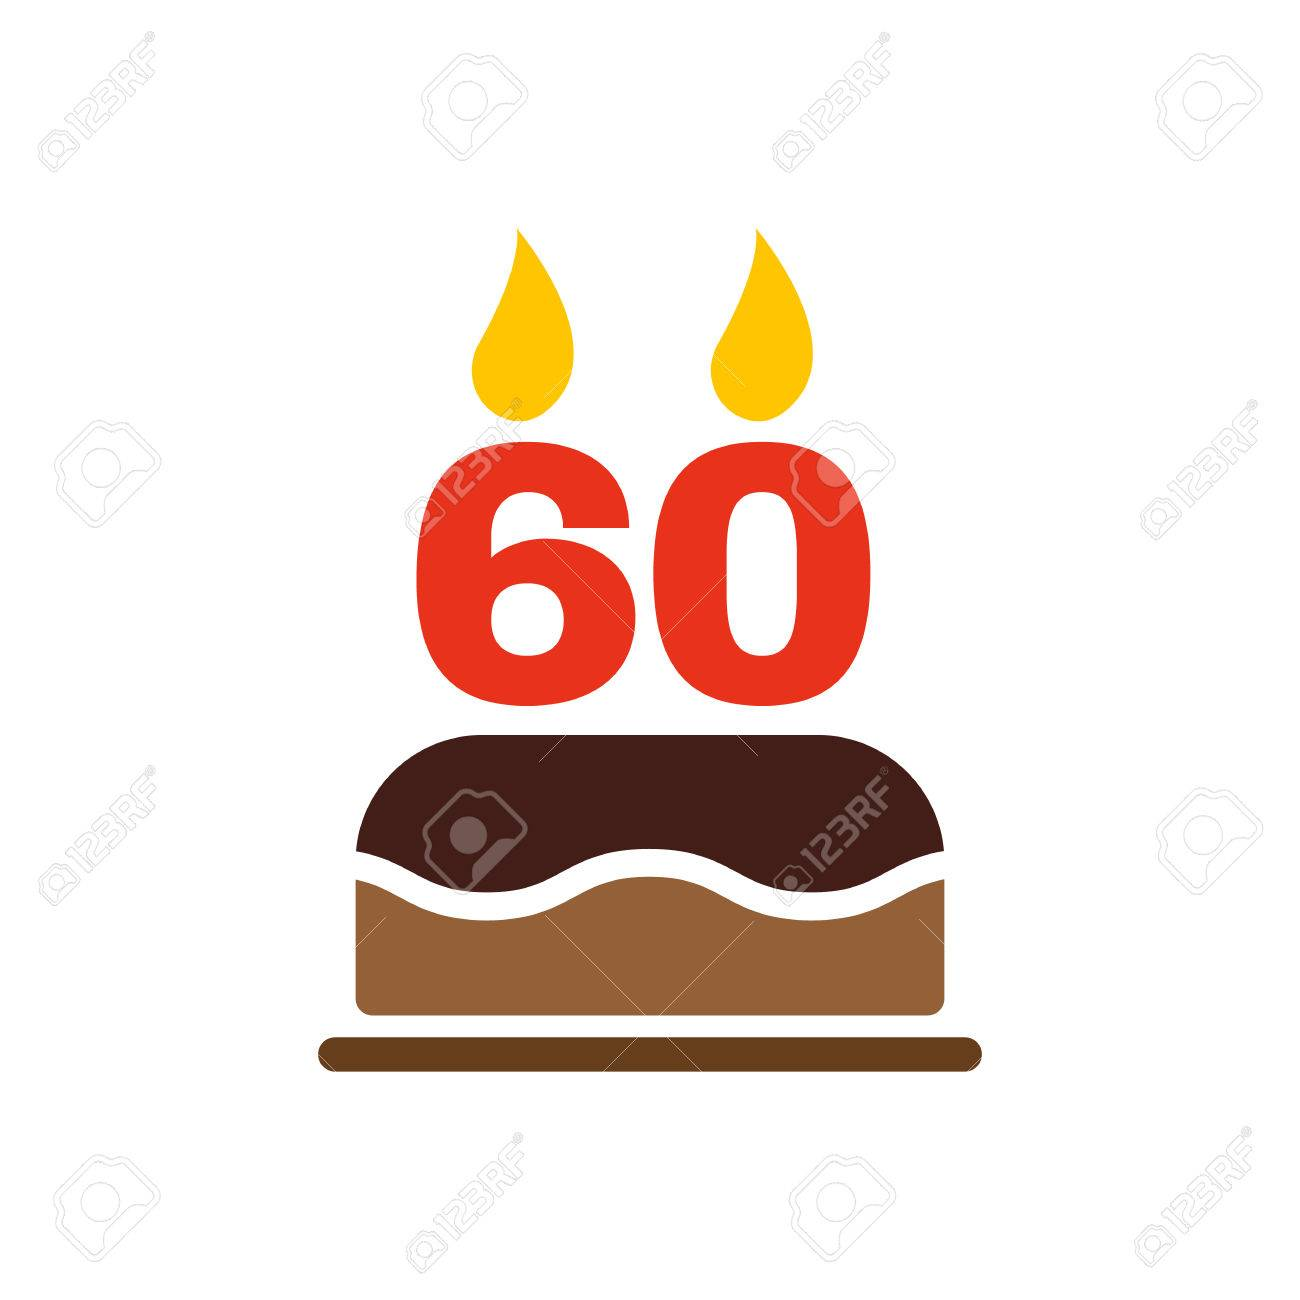 Astonishing The Birthday Cake With Candles In The Form Of Number 60 Icon Personalised Birthday Cards Sponlily Jamesorg